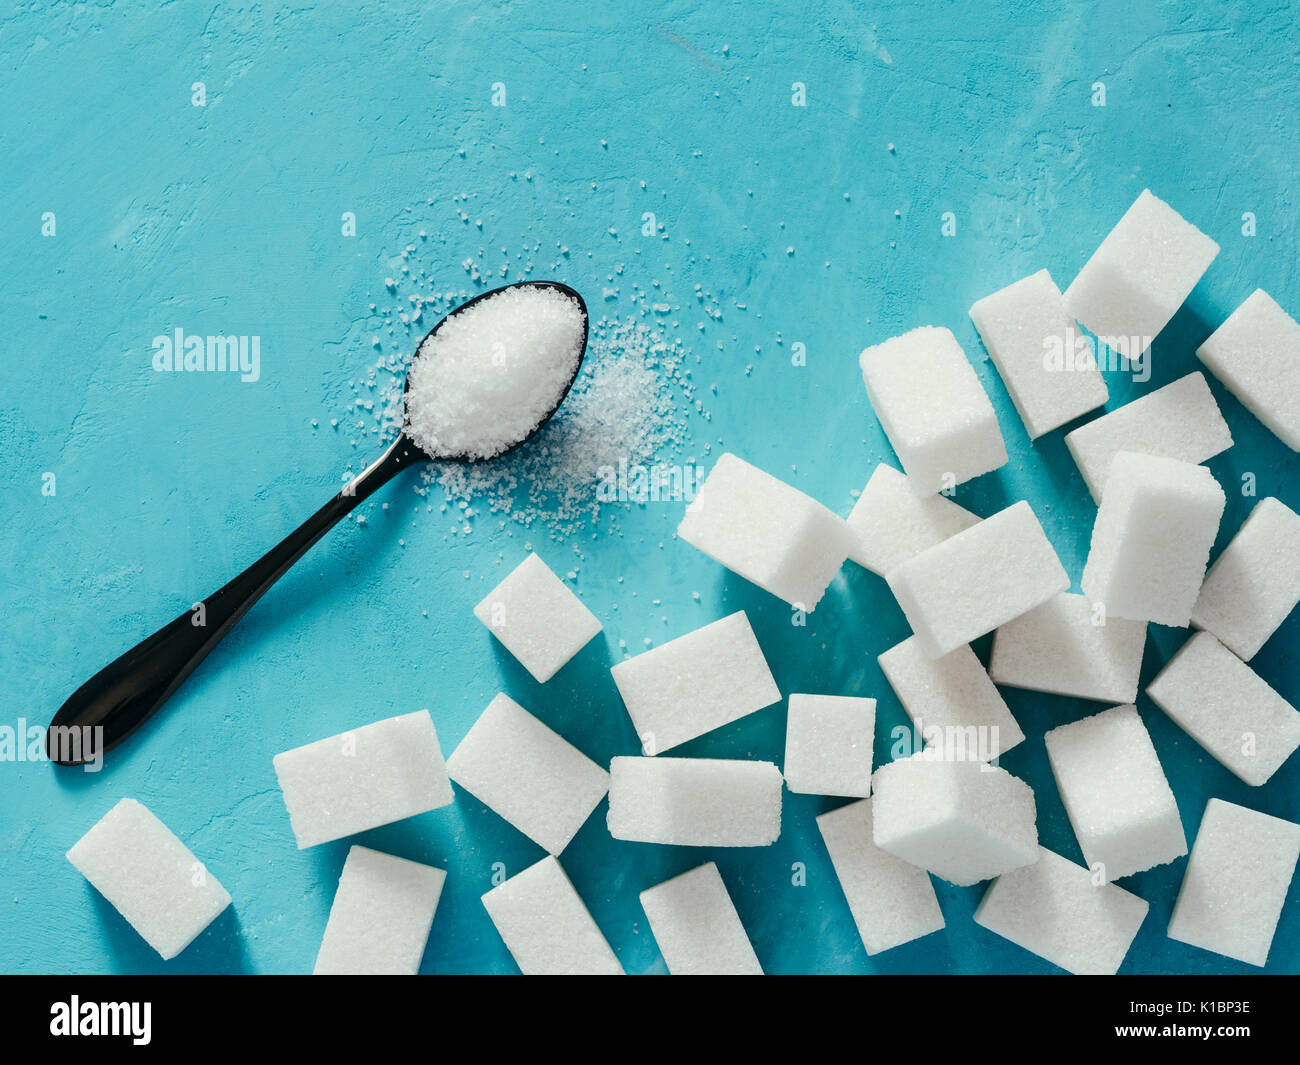 background of sugar cubes and sugar in spoon. White sugar on blue background. Sugar with copy space. Top view or flat lay - Stock Image